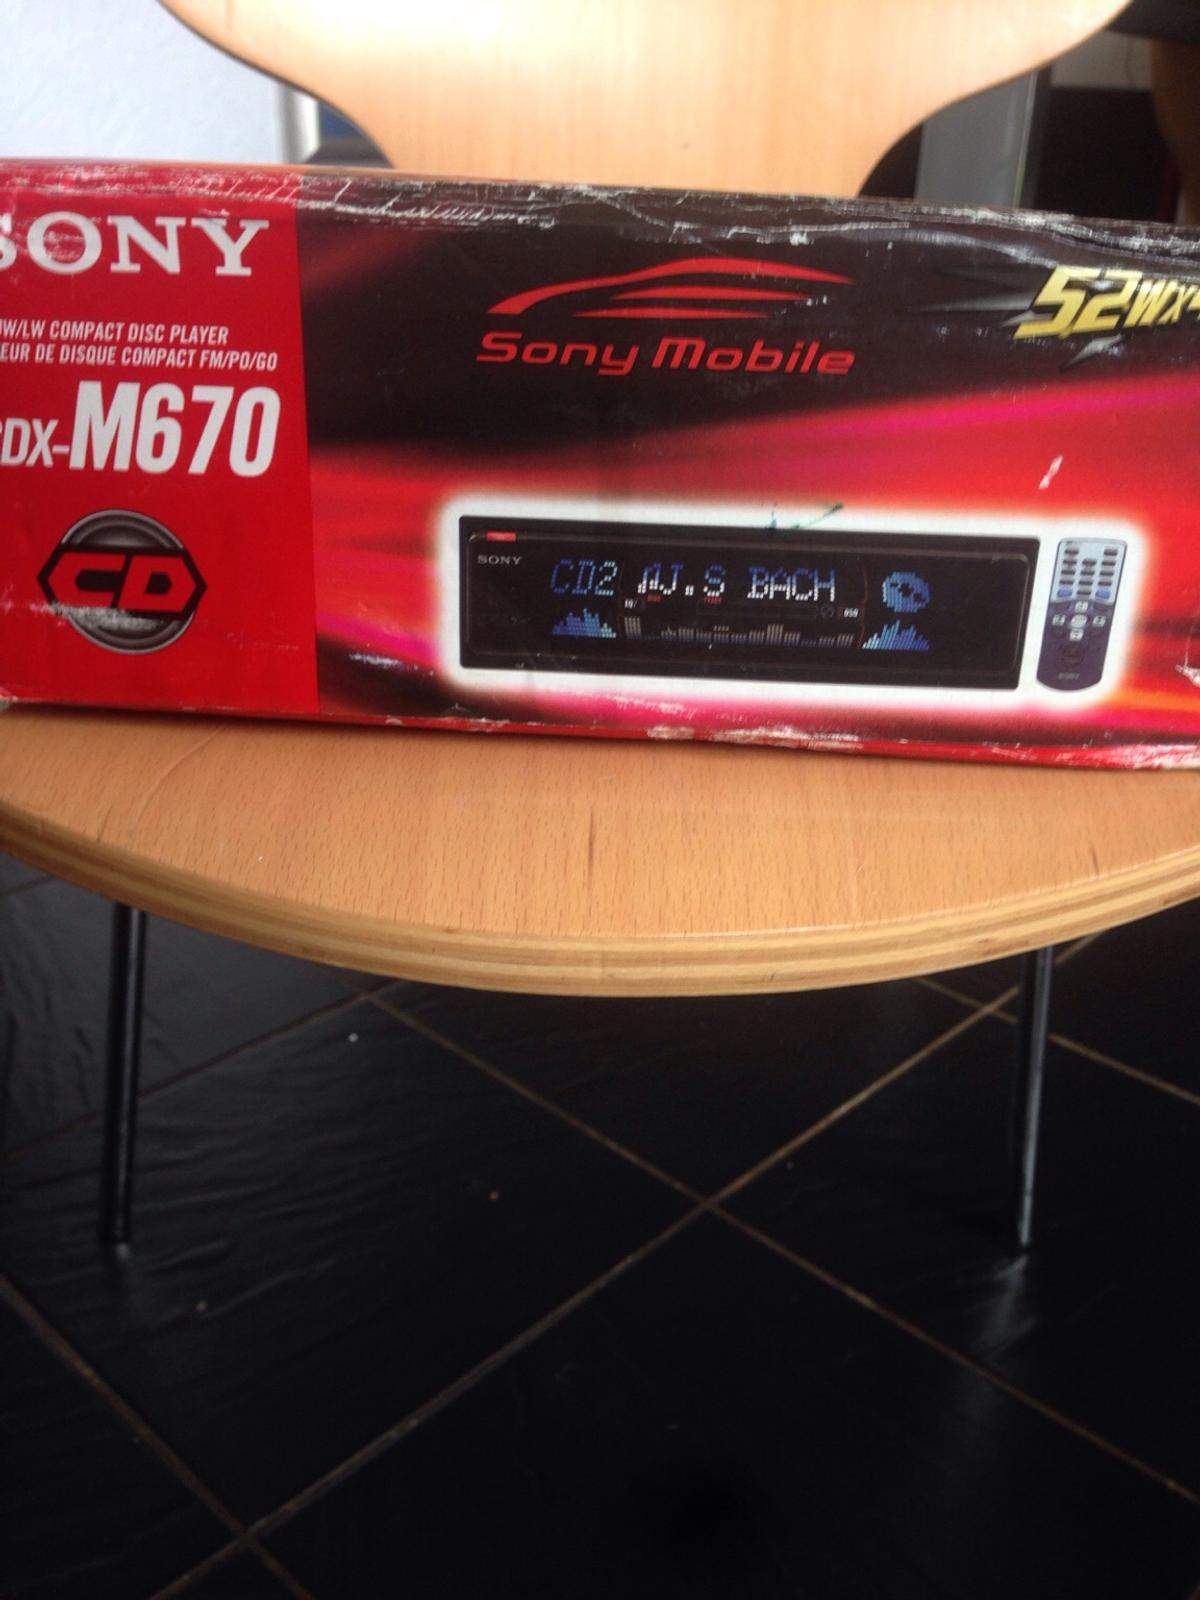 sony cdx m670 car audio in wn3 wigan for �35 00 for sale  sony plug cdx gt210 cdx m630 cdx m650